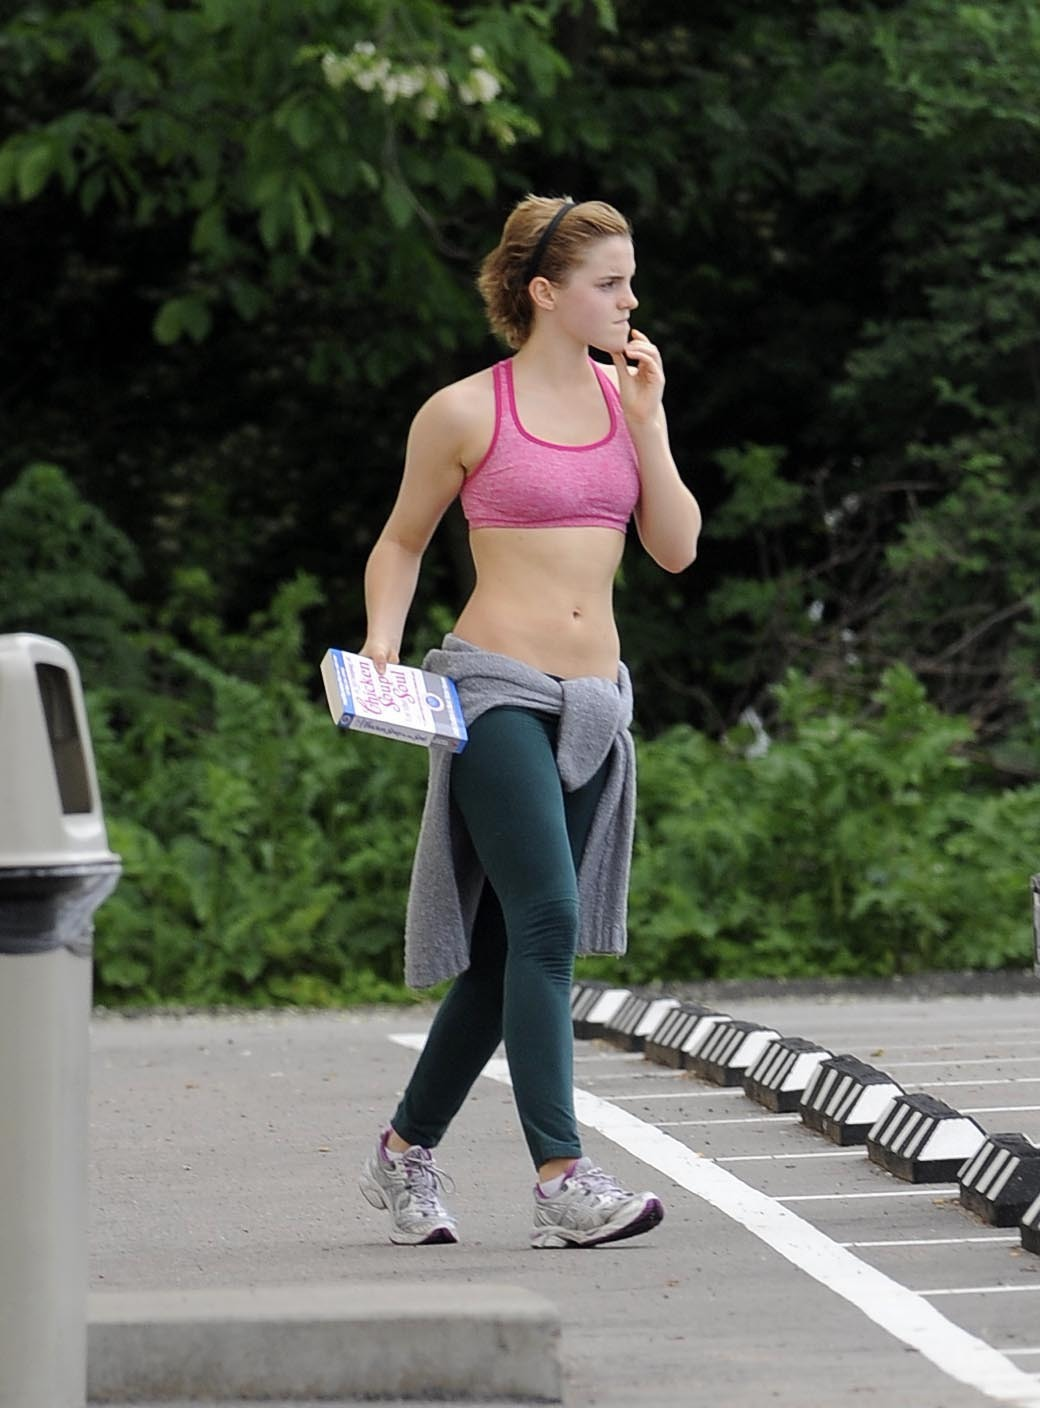 Emma Watson shows off her belly wearing sexy sports outfit in ...: www.celeb-for-free.com/pics/celeb2330/emma_watson_adults...